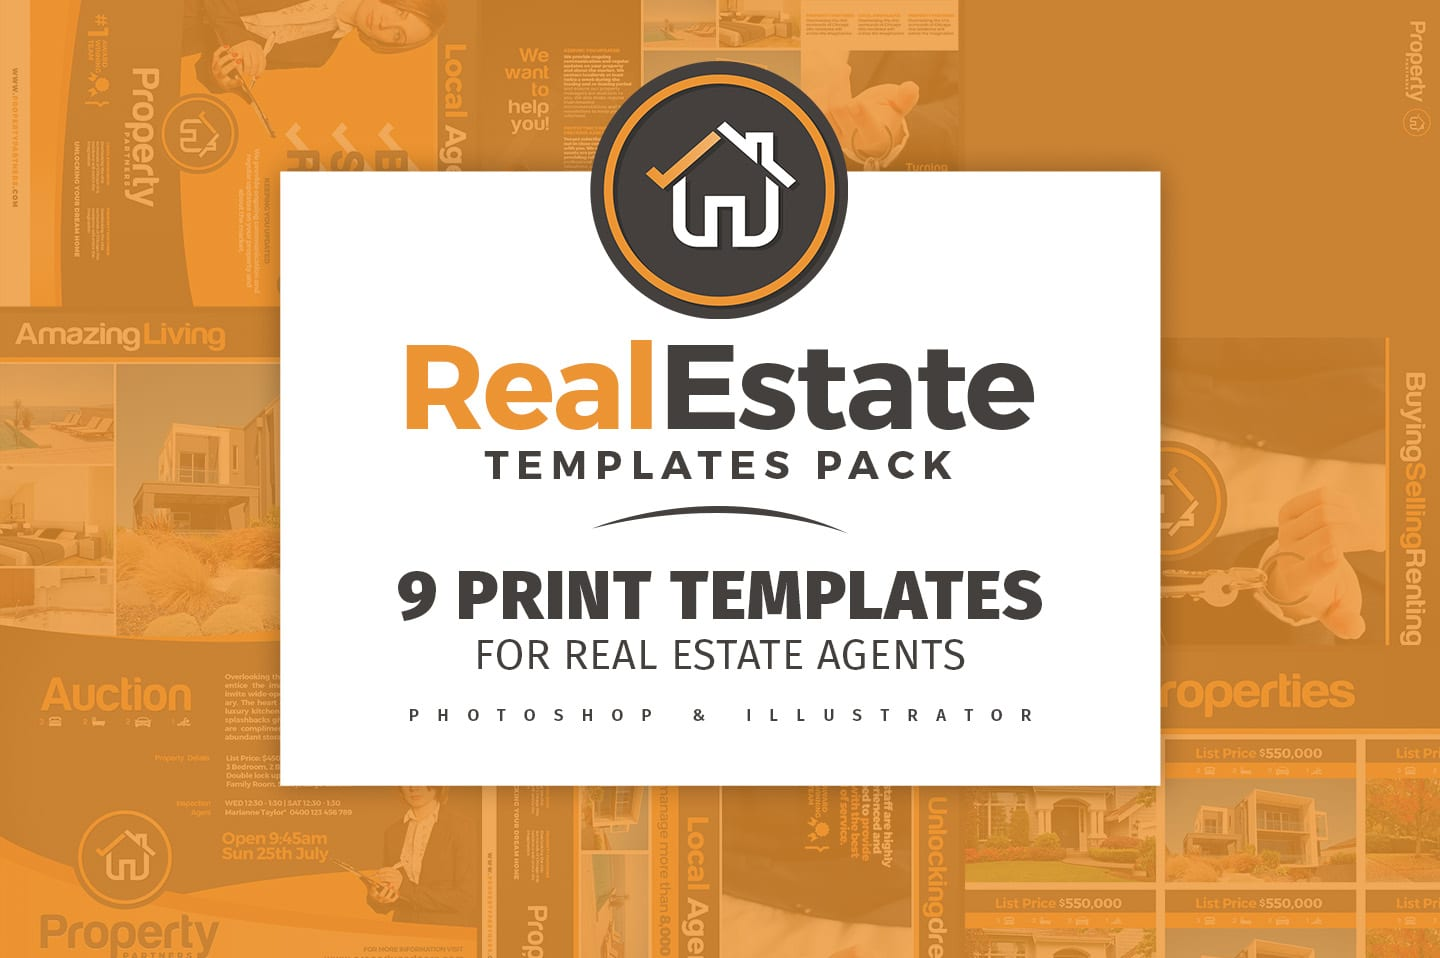 Real Estate Templates Pack